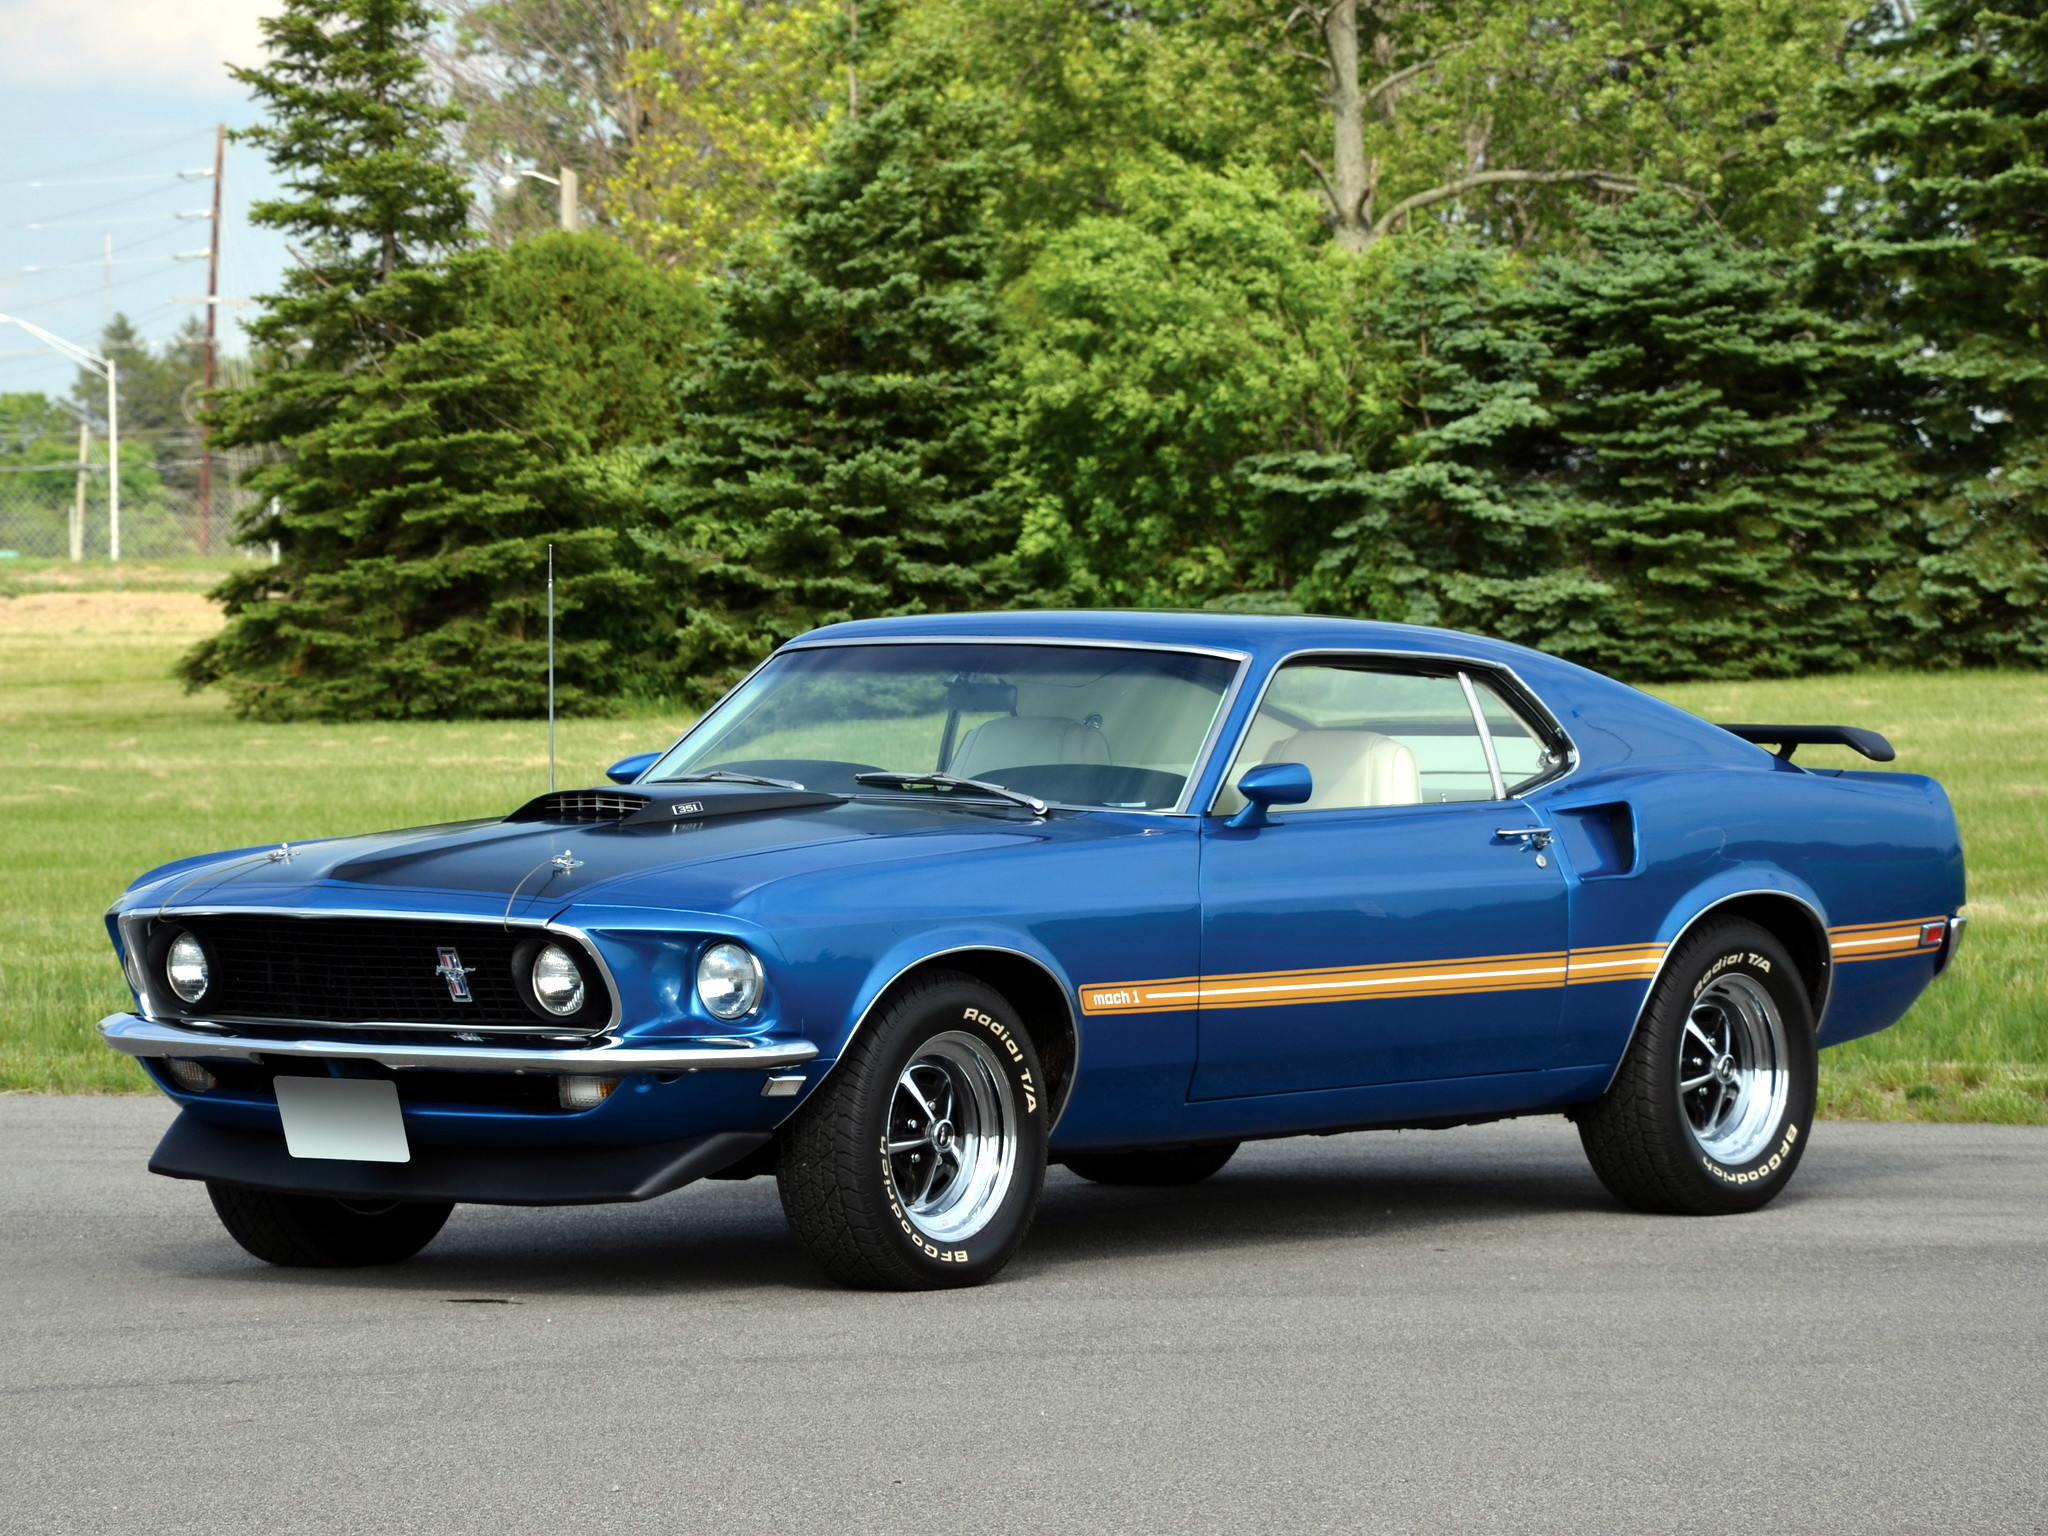 1969 Mustang Wallpapers 58 Images Ford Mach 40 2048x1536 Boss 302 Muscle Classic Fg Wallpaper 114835 Wallpaperup